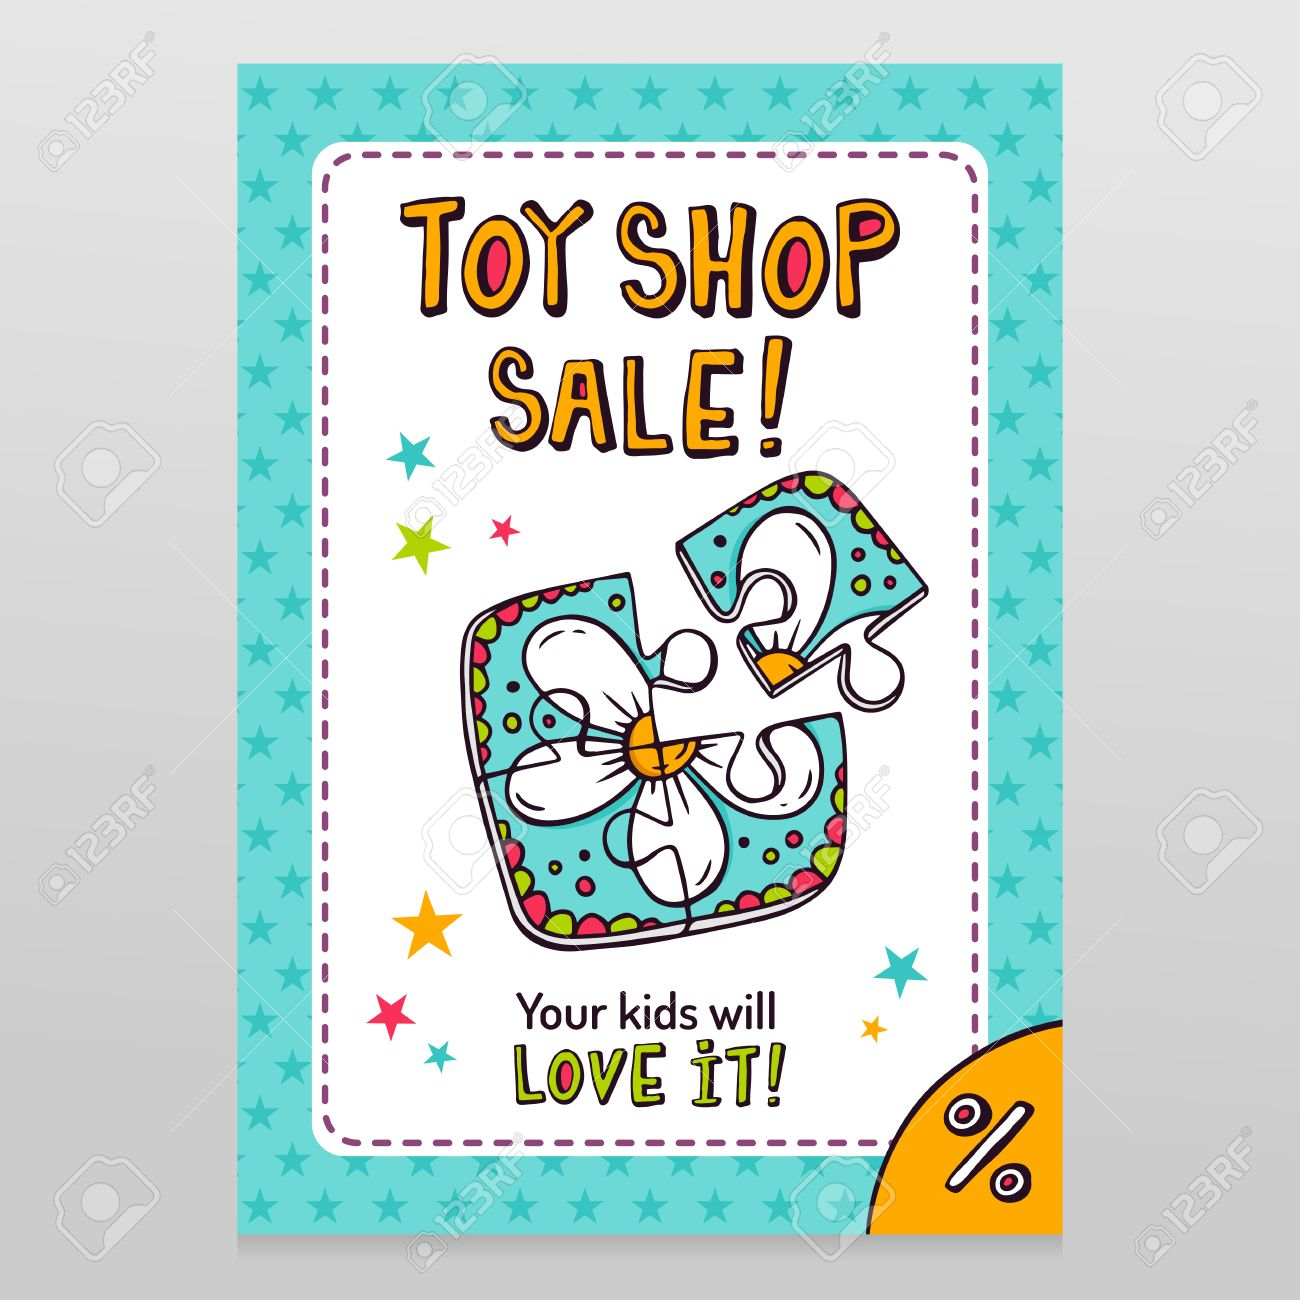 toy shop bright vector sale flyer design with toy jigsaw puzzle